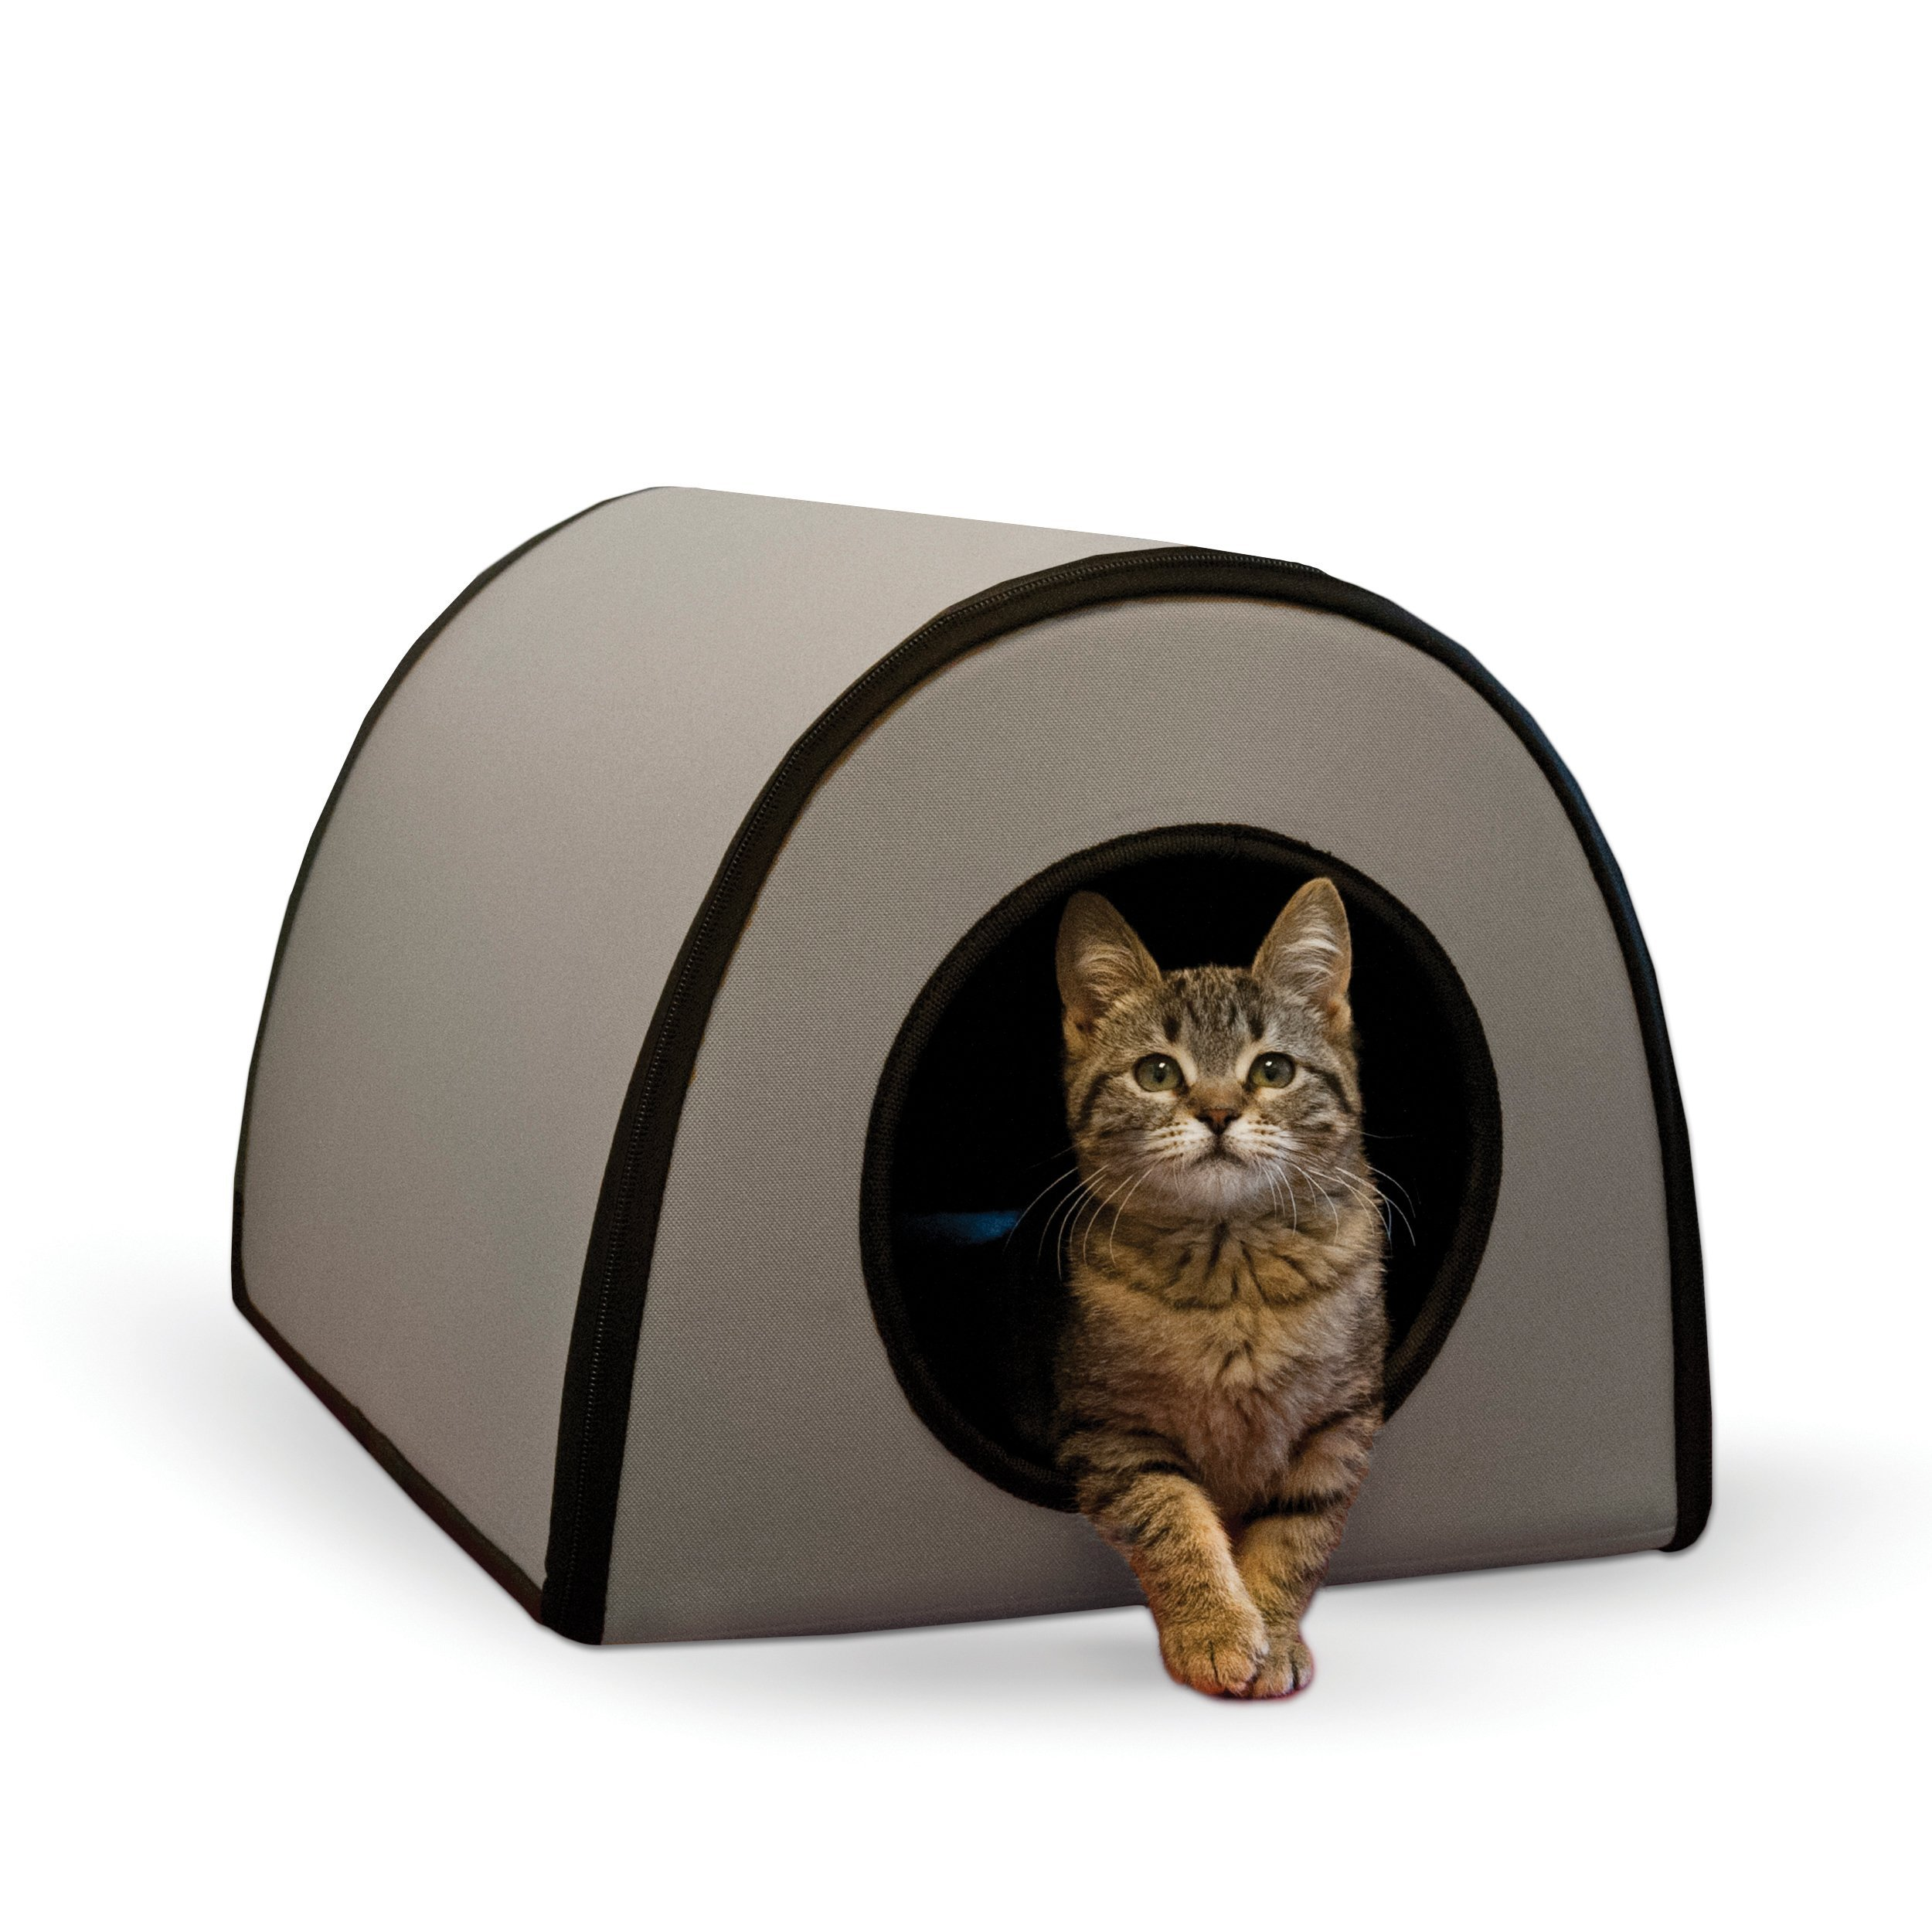 K&H Pet Products Mod Thermo-Kitty Heated Shelter Gray 21'' x 14'' x 13'' 25W Great for Outdoor Cats